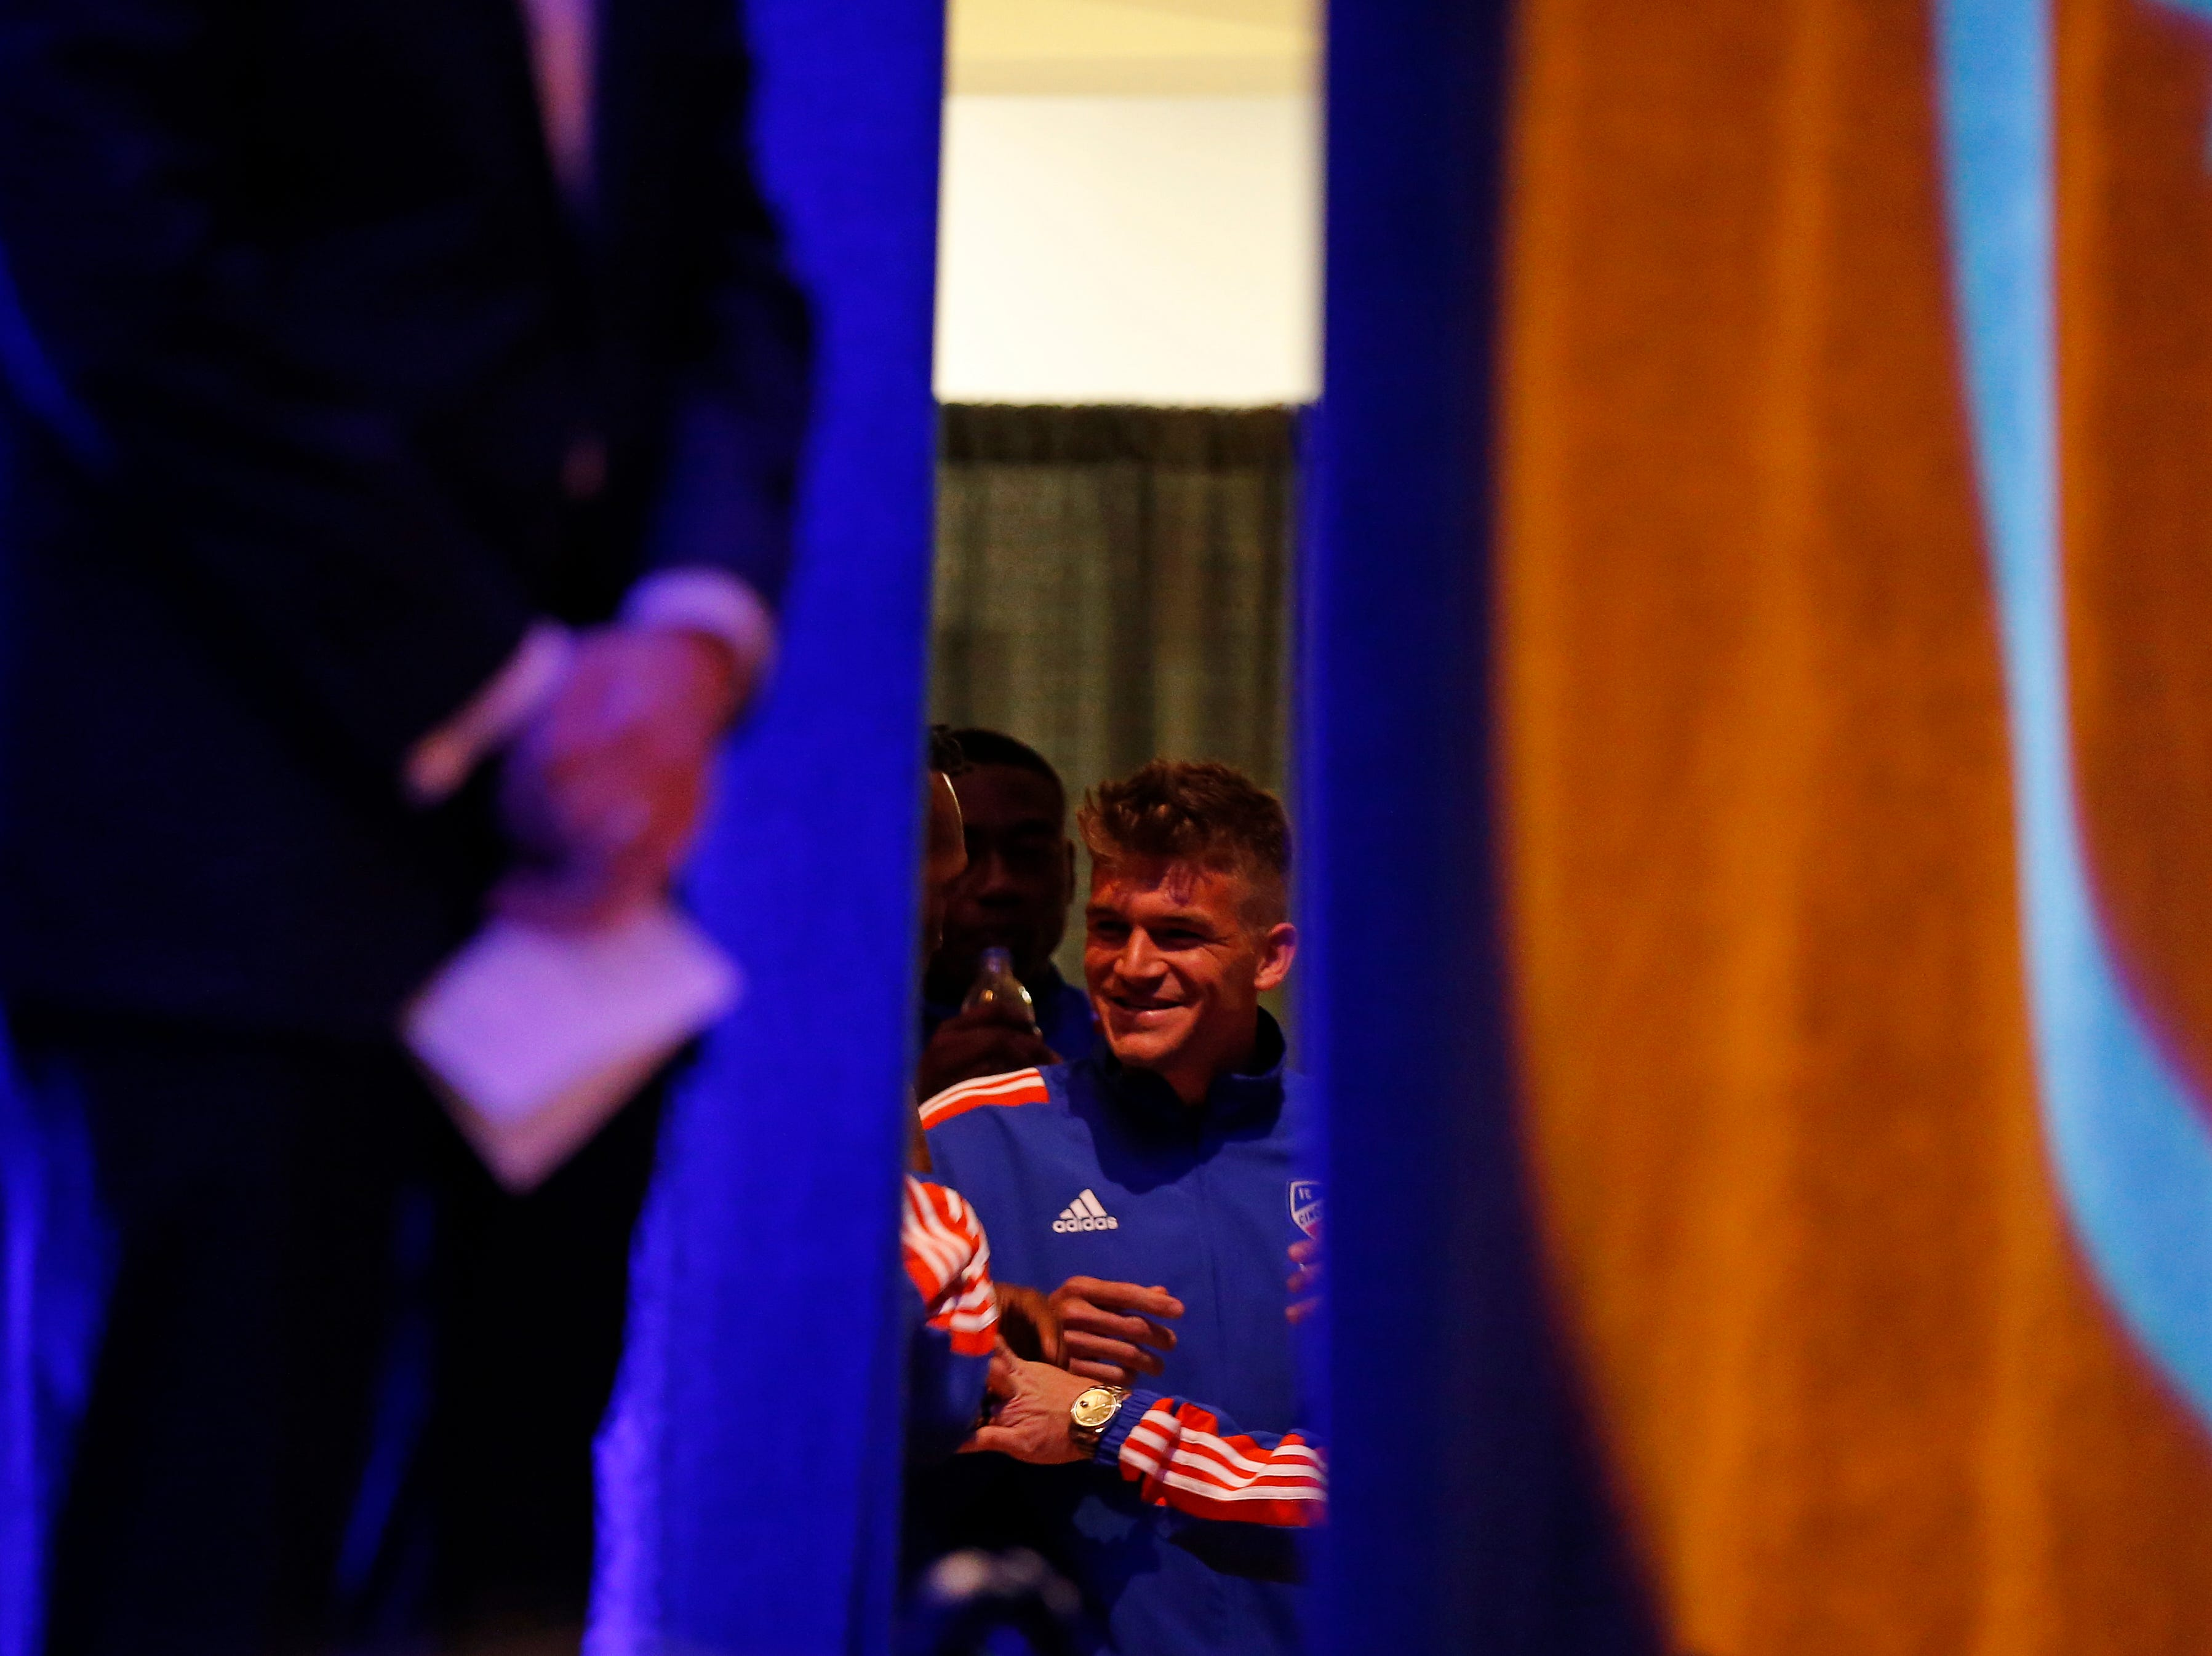 Player representatives laugh back stage before being introduced during an event to unveil FC Cincinnati's jersey for the team's inaugural season in Major League Soccer at the Music Hall Ballroom in the Over-the-Rhine neighborhood of Cincinnati on Monday, Feb. 11, 2019.